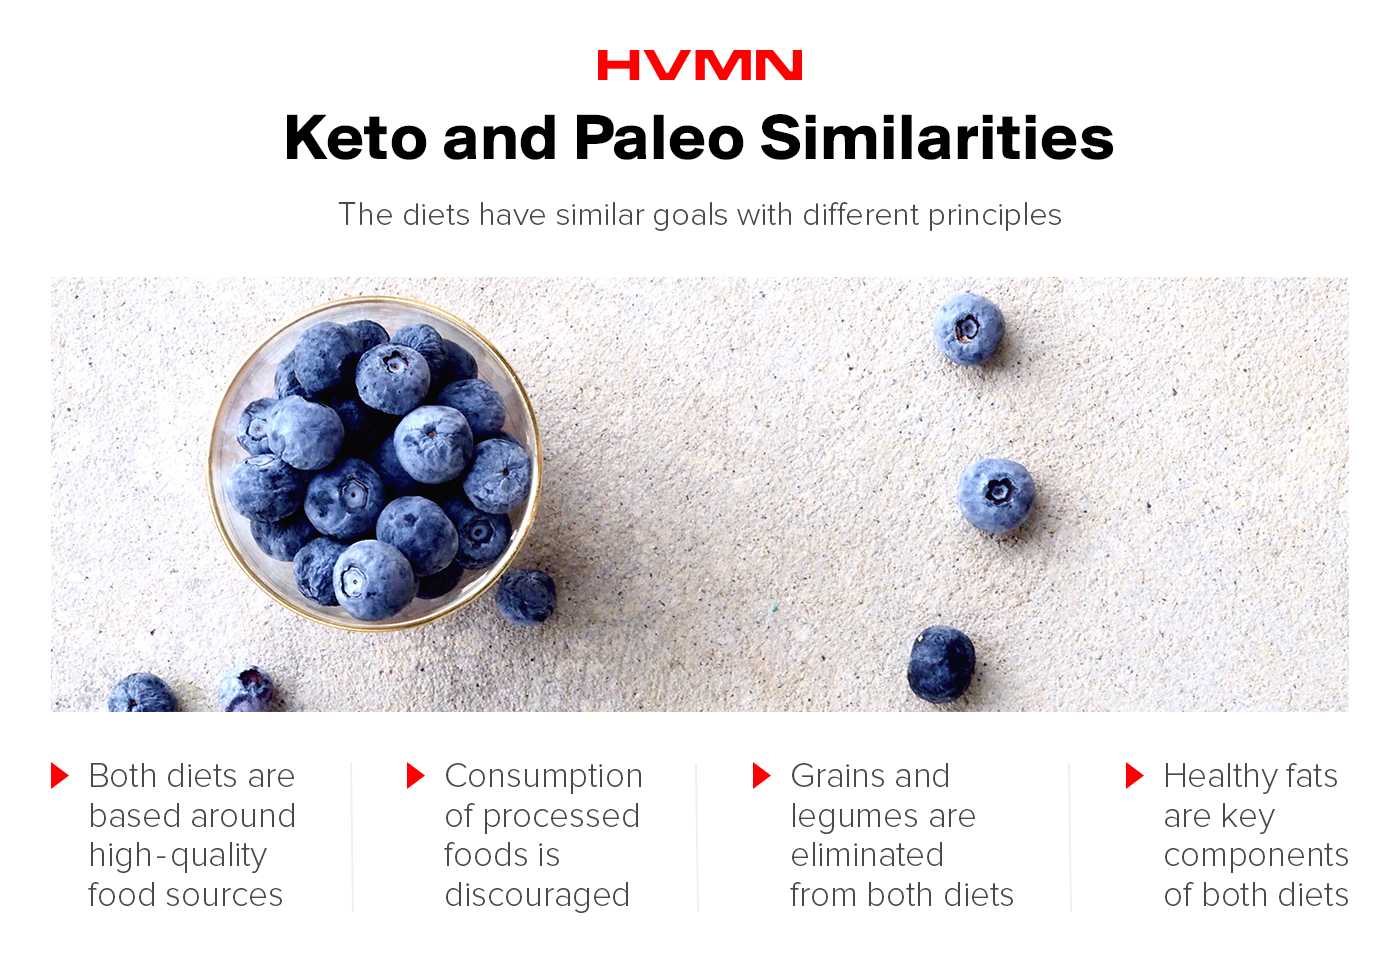 A bowl of blueberries showing the similarities between keto and paleo